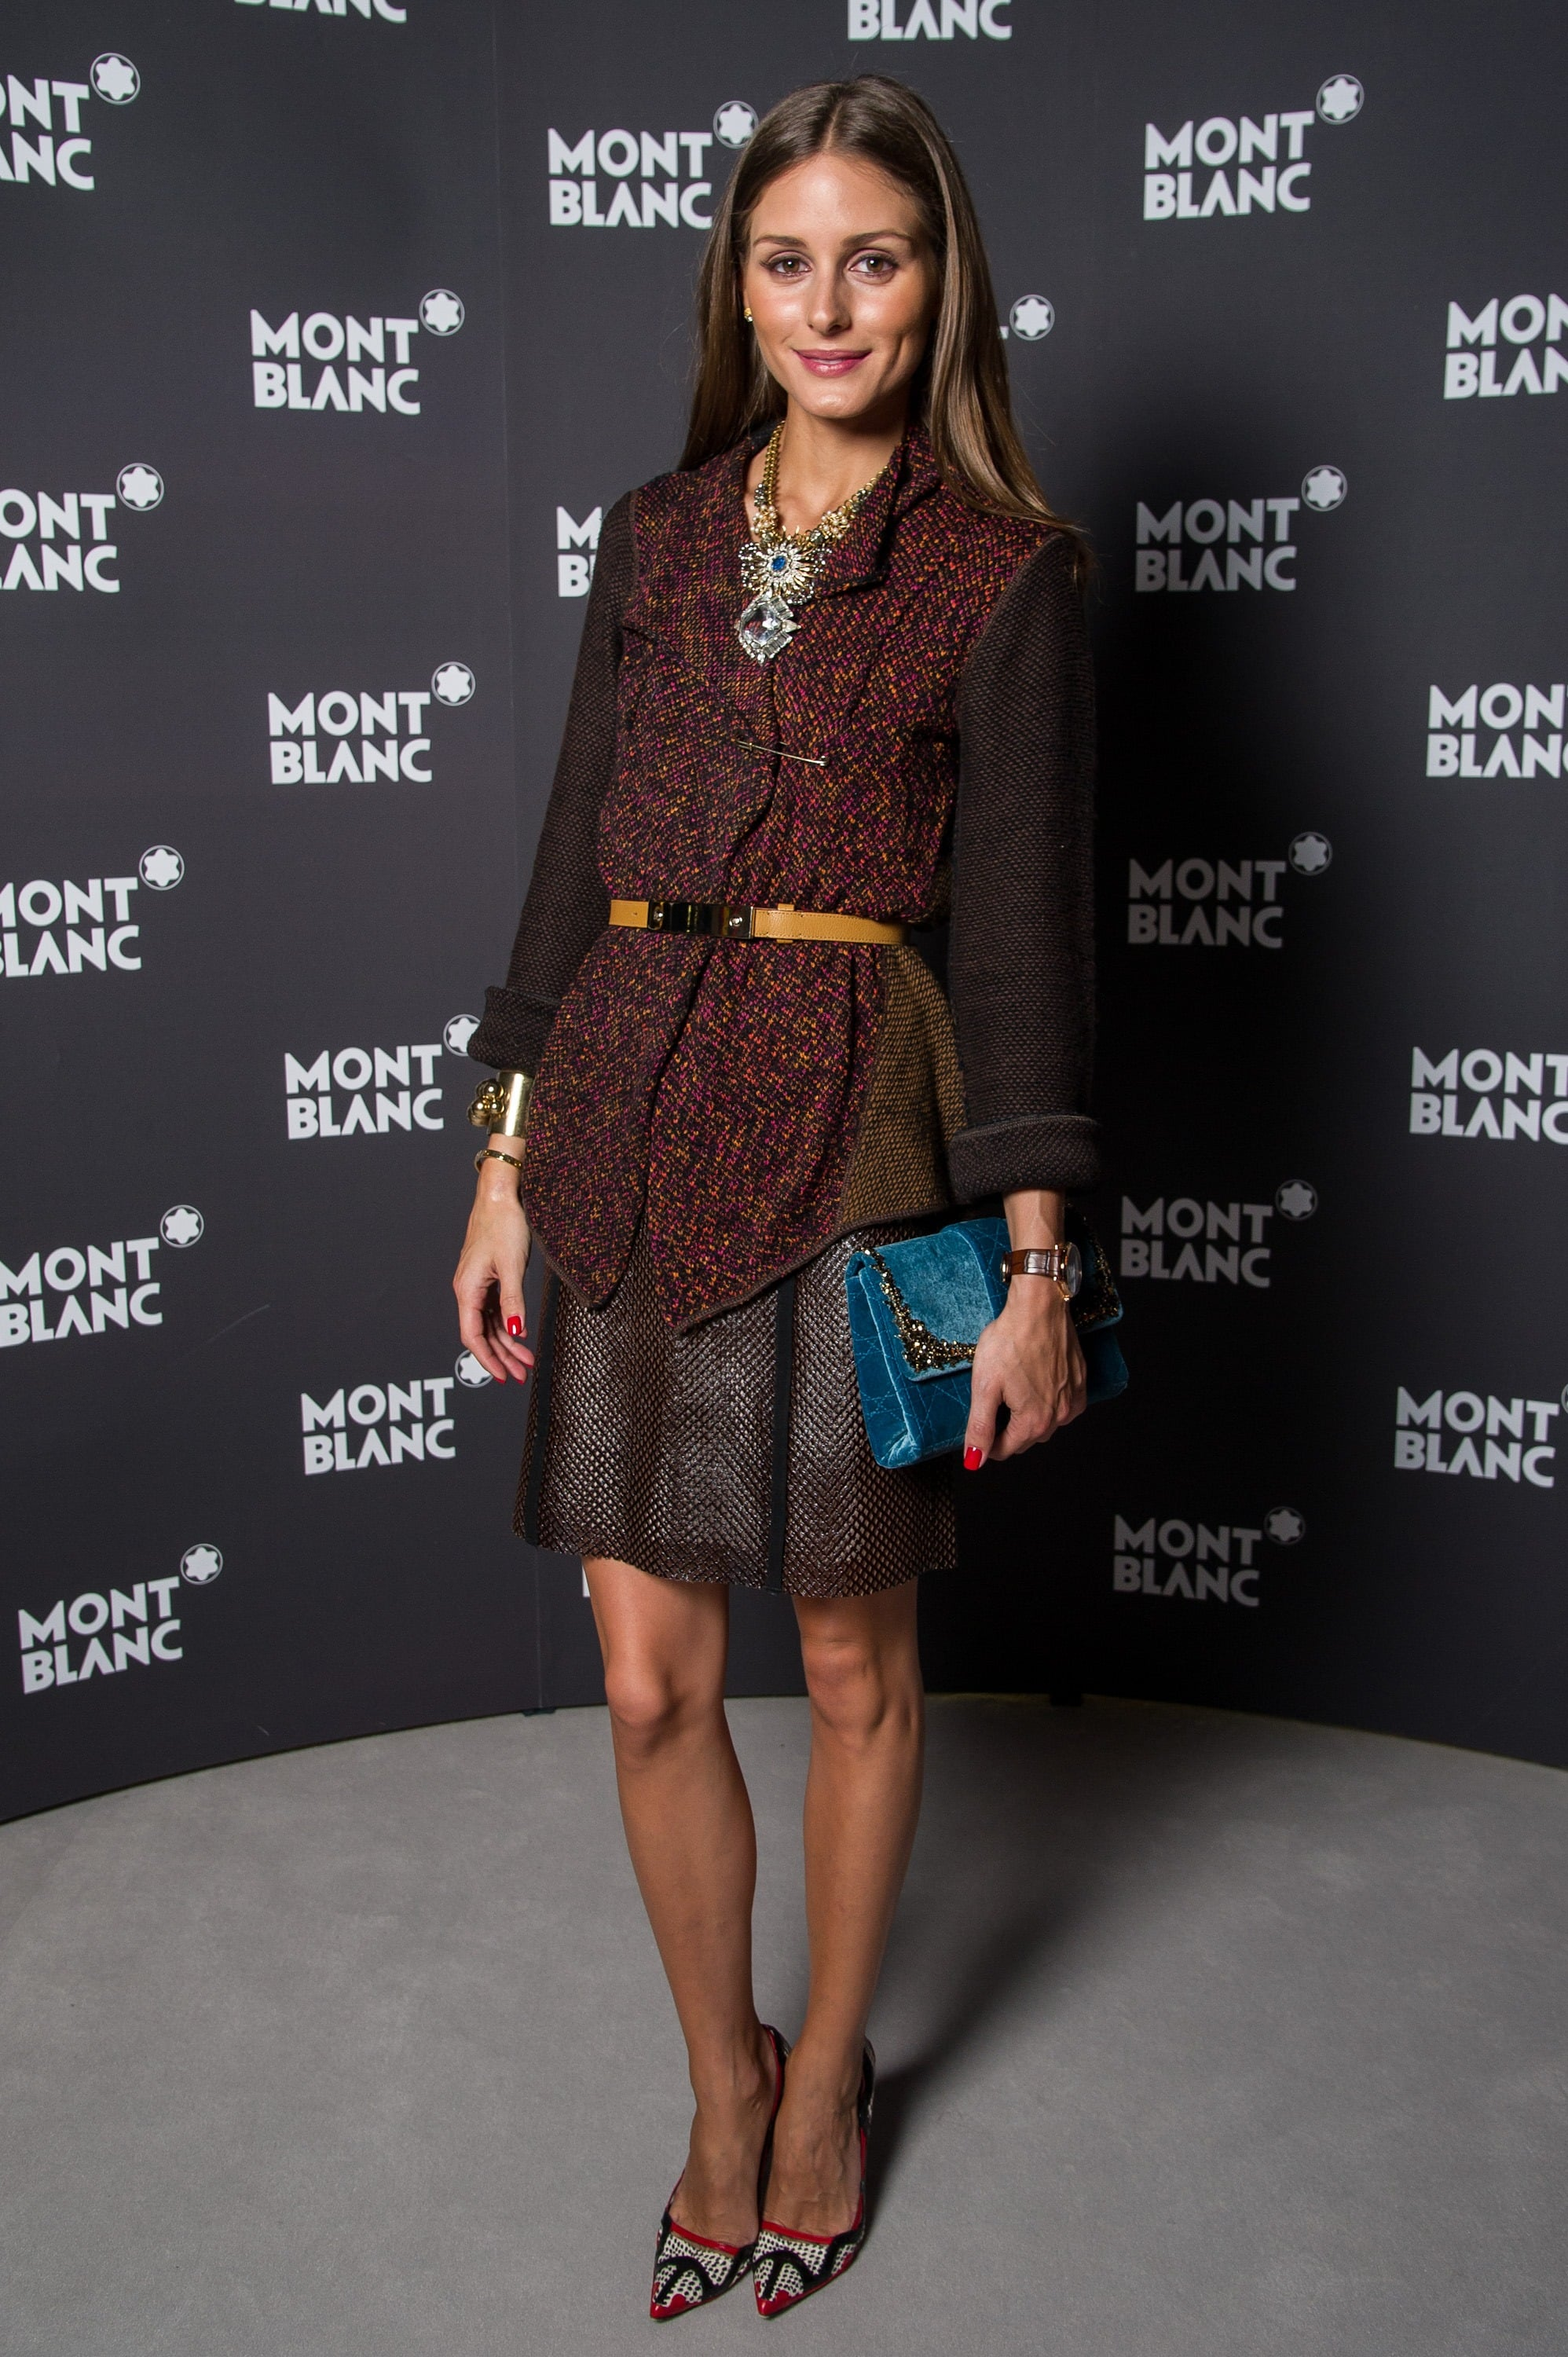 Olivia stopped by a Montblanc event in an eclectic-meets-sophisticated play on a tweed jacket, statement jewels, and playful pumps.